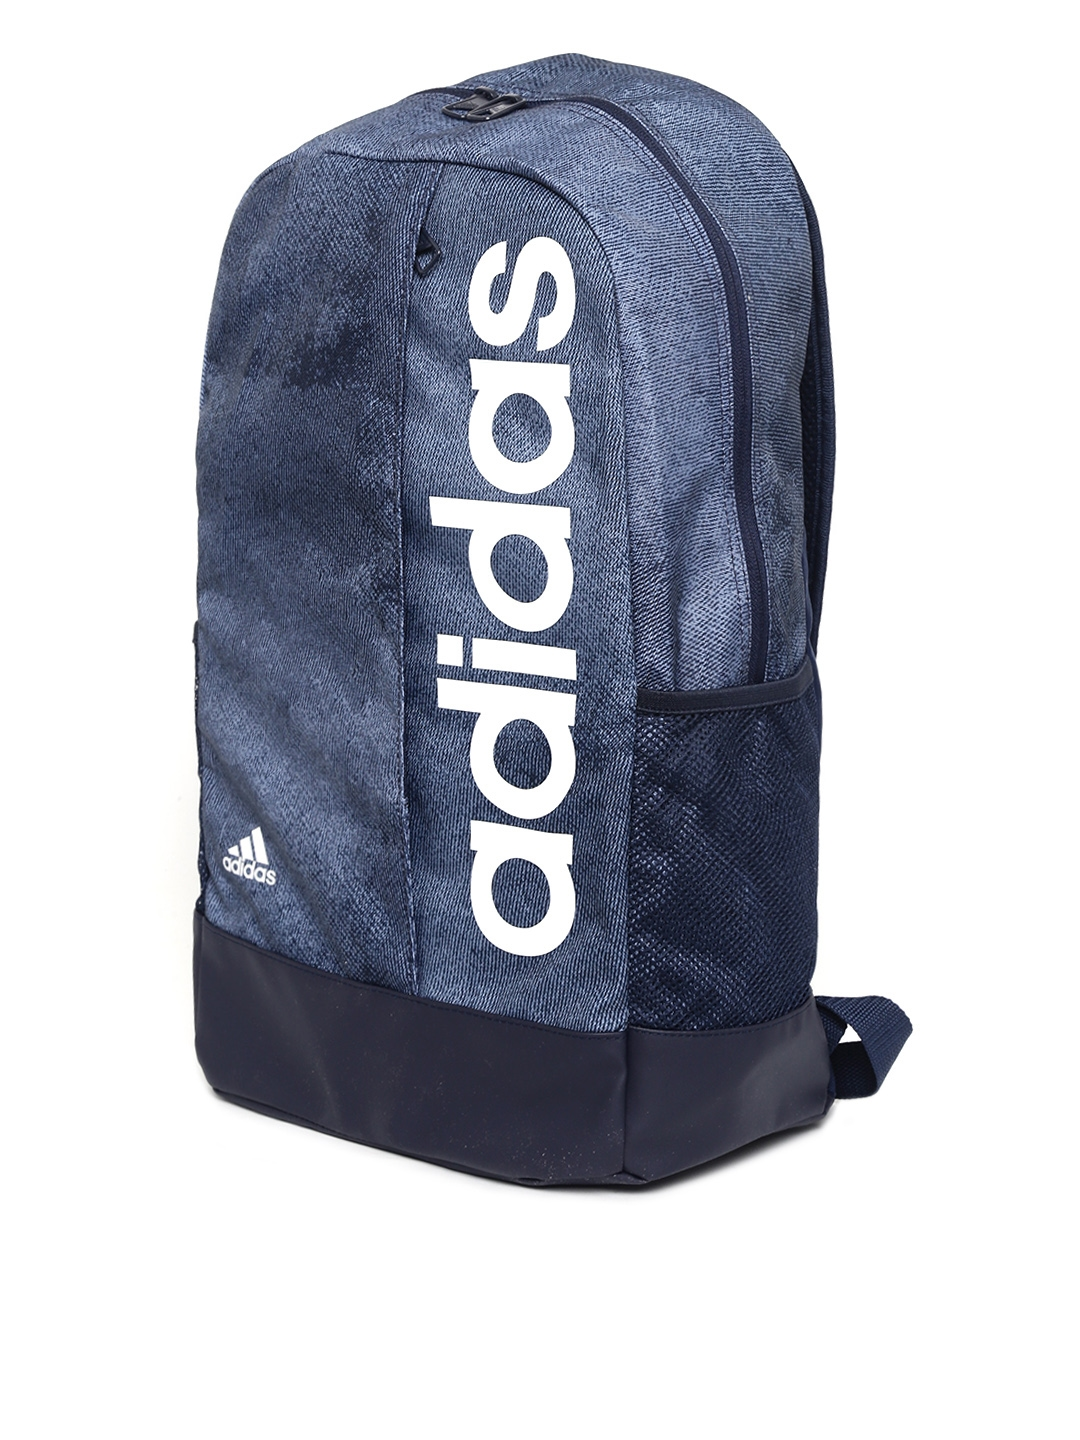 17f1fd68a0a3 Buy ADIDAS Unisex Navy Blue LIN PER Brand Logo Backpack - Backpacks ...